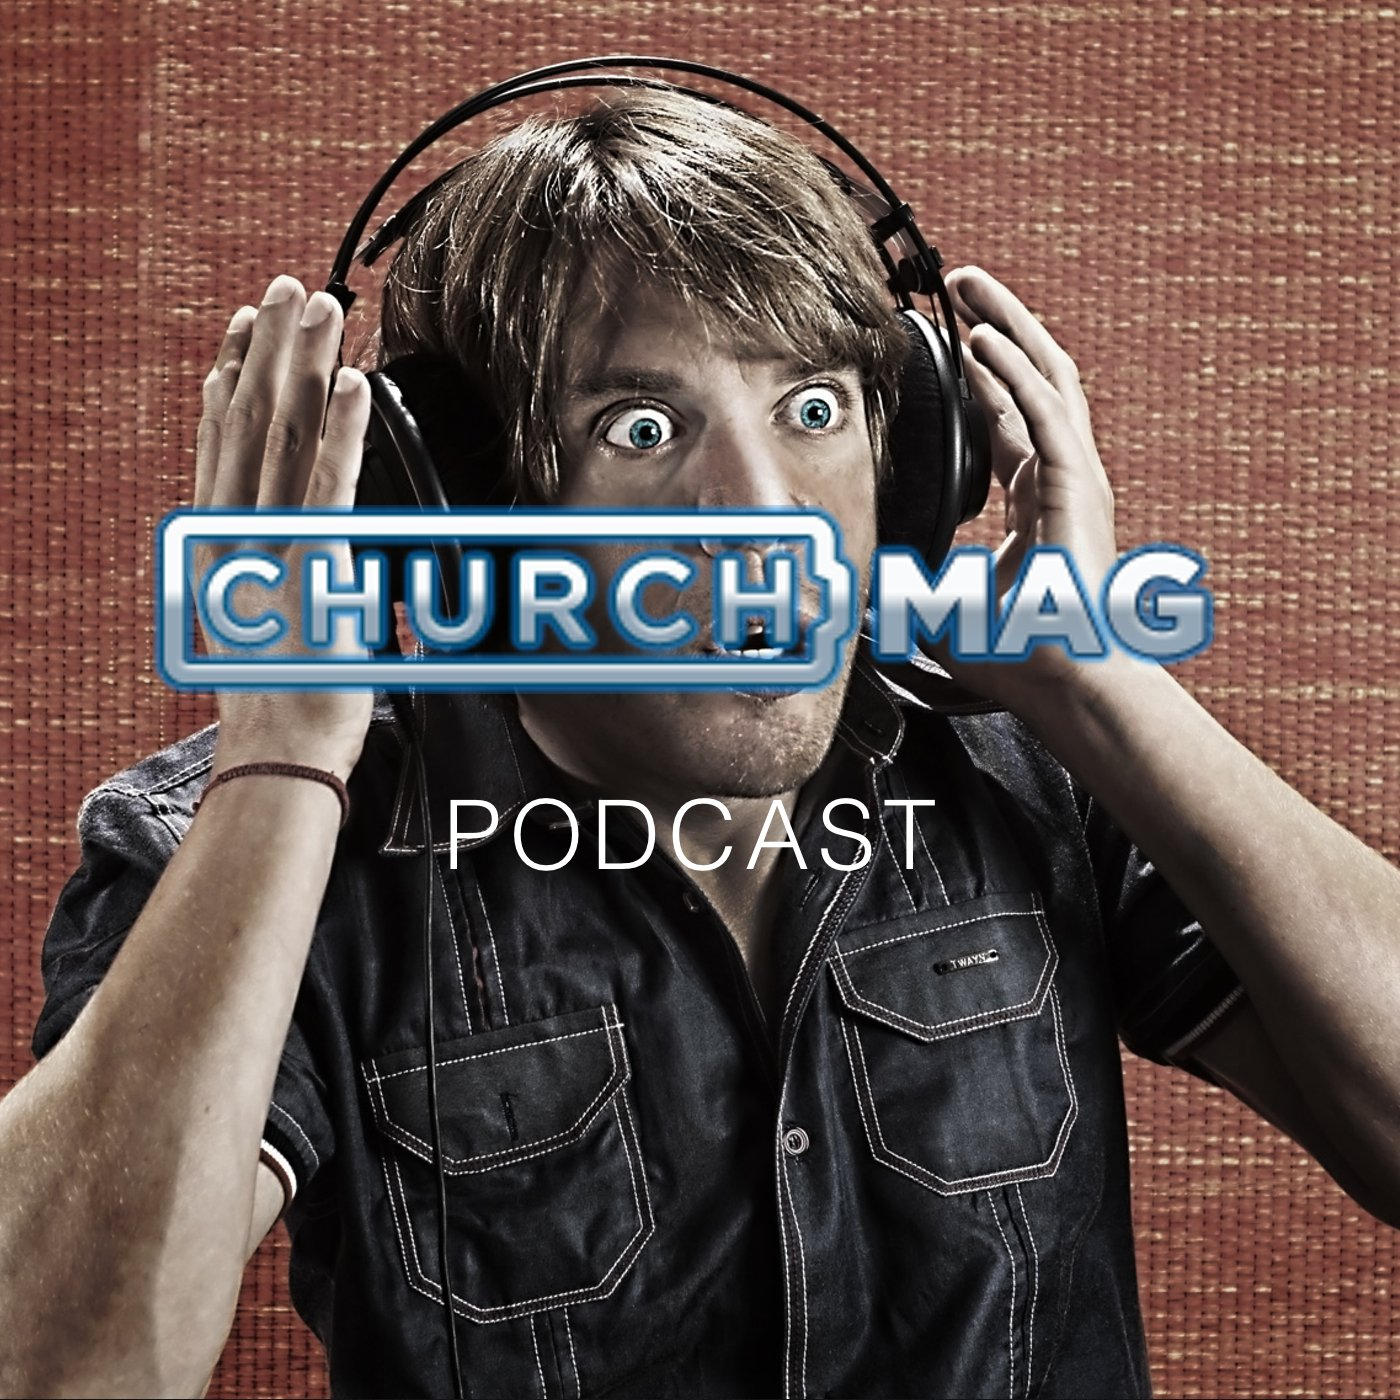 What's the Future of the ChurchMag Podcast? [Podcast]